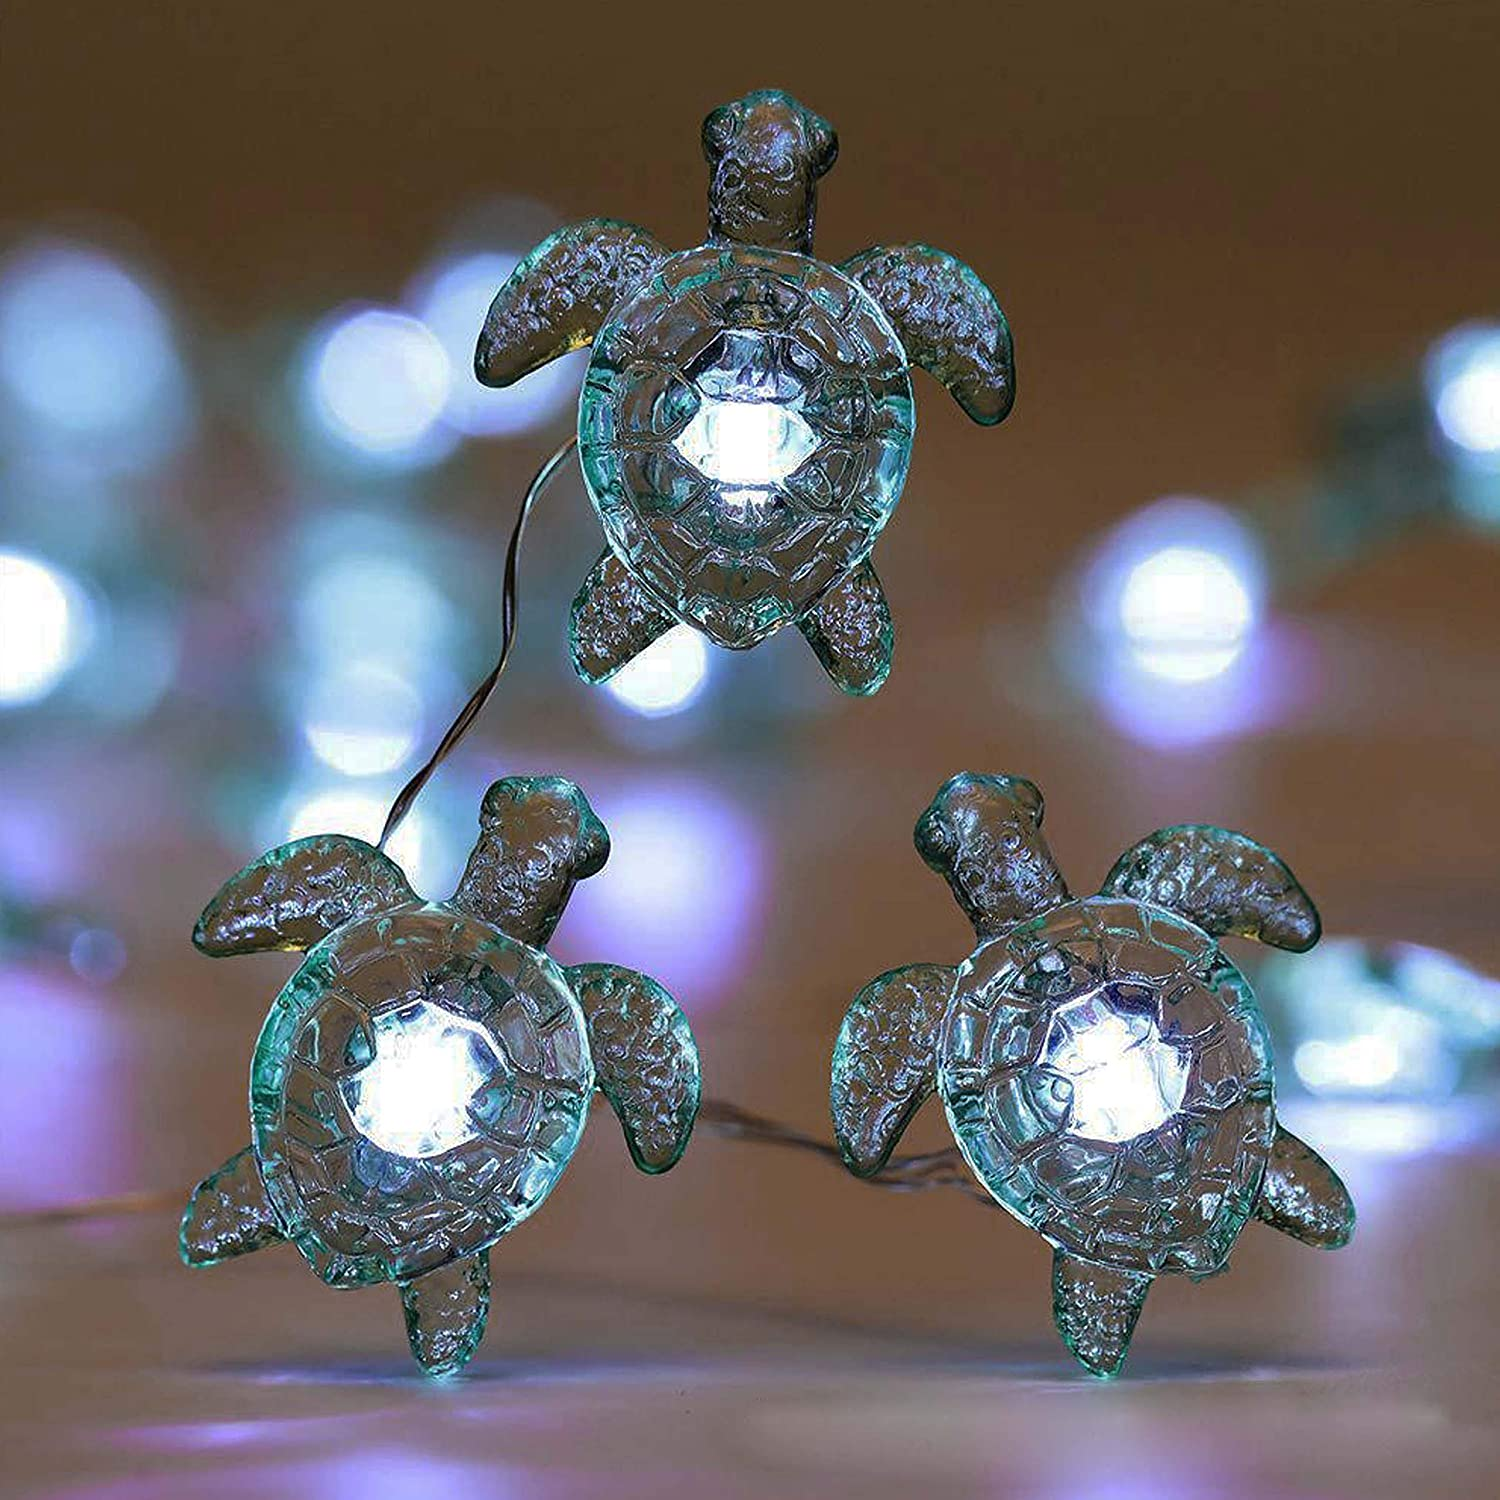 Decorman Sea Turtle Decorative String Lights, 14ft 40 LED 8 Modes Cool White Weatherproof Battery Operated Ocean Theme Lights for Bedrooms Parties Weddings Gardens with Remote and Timer